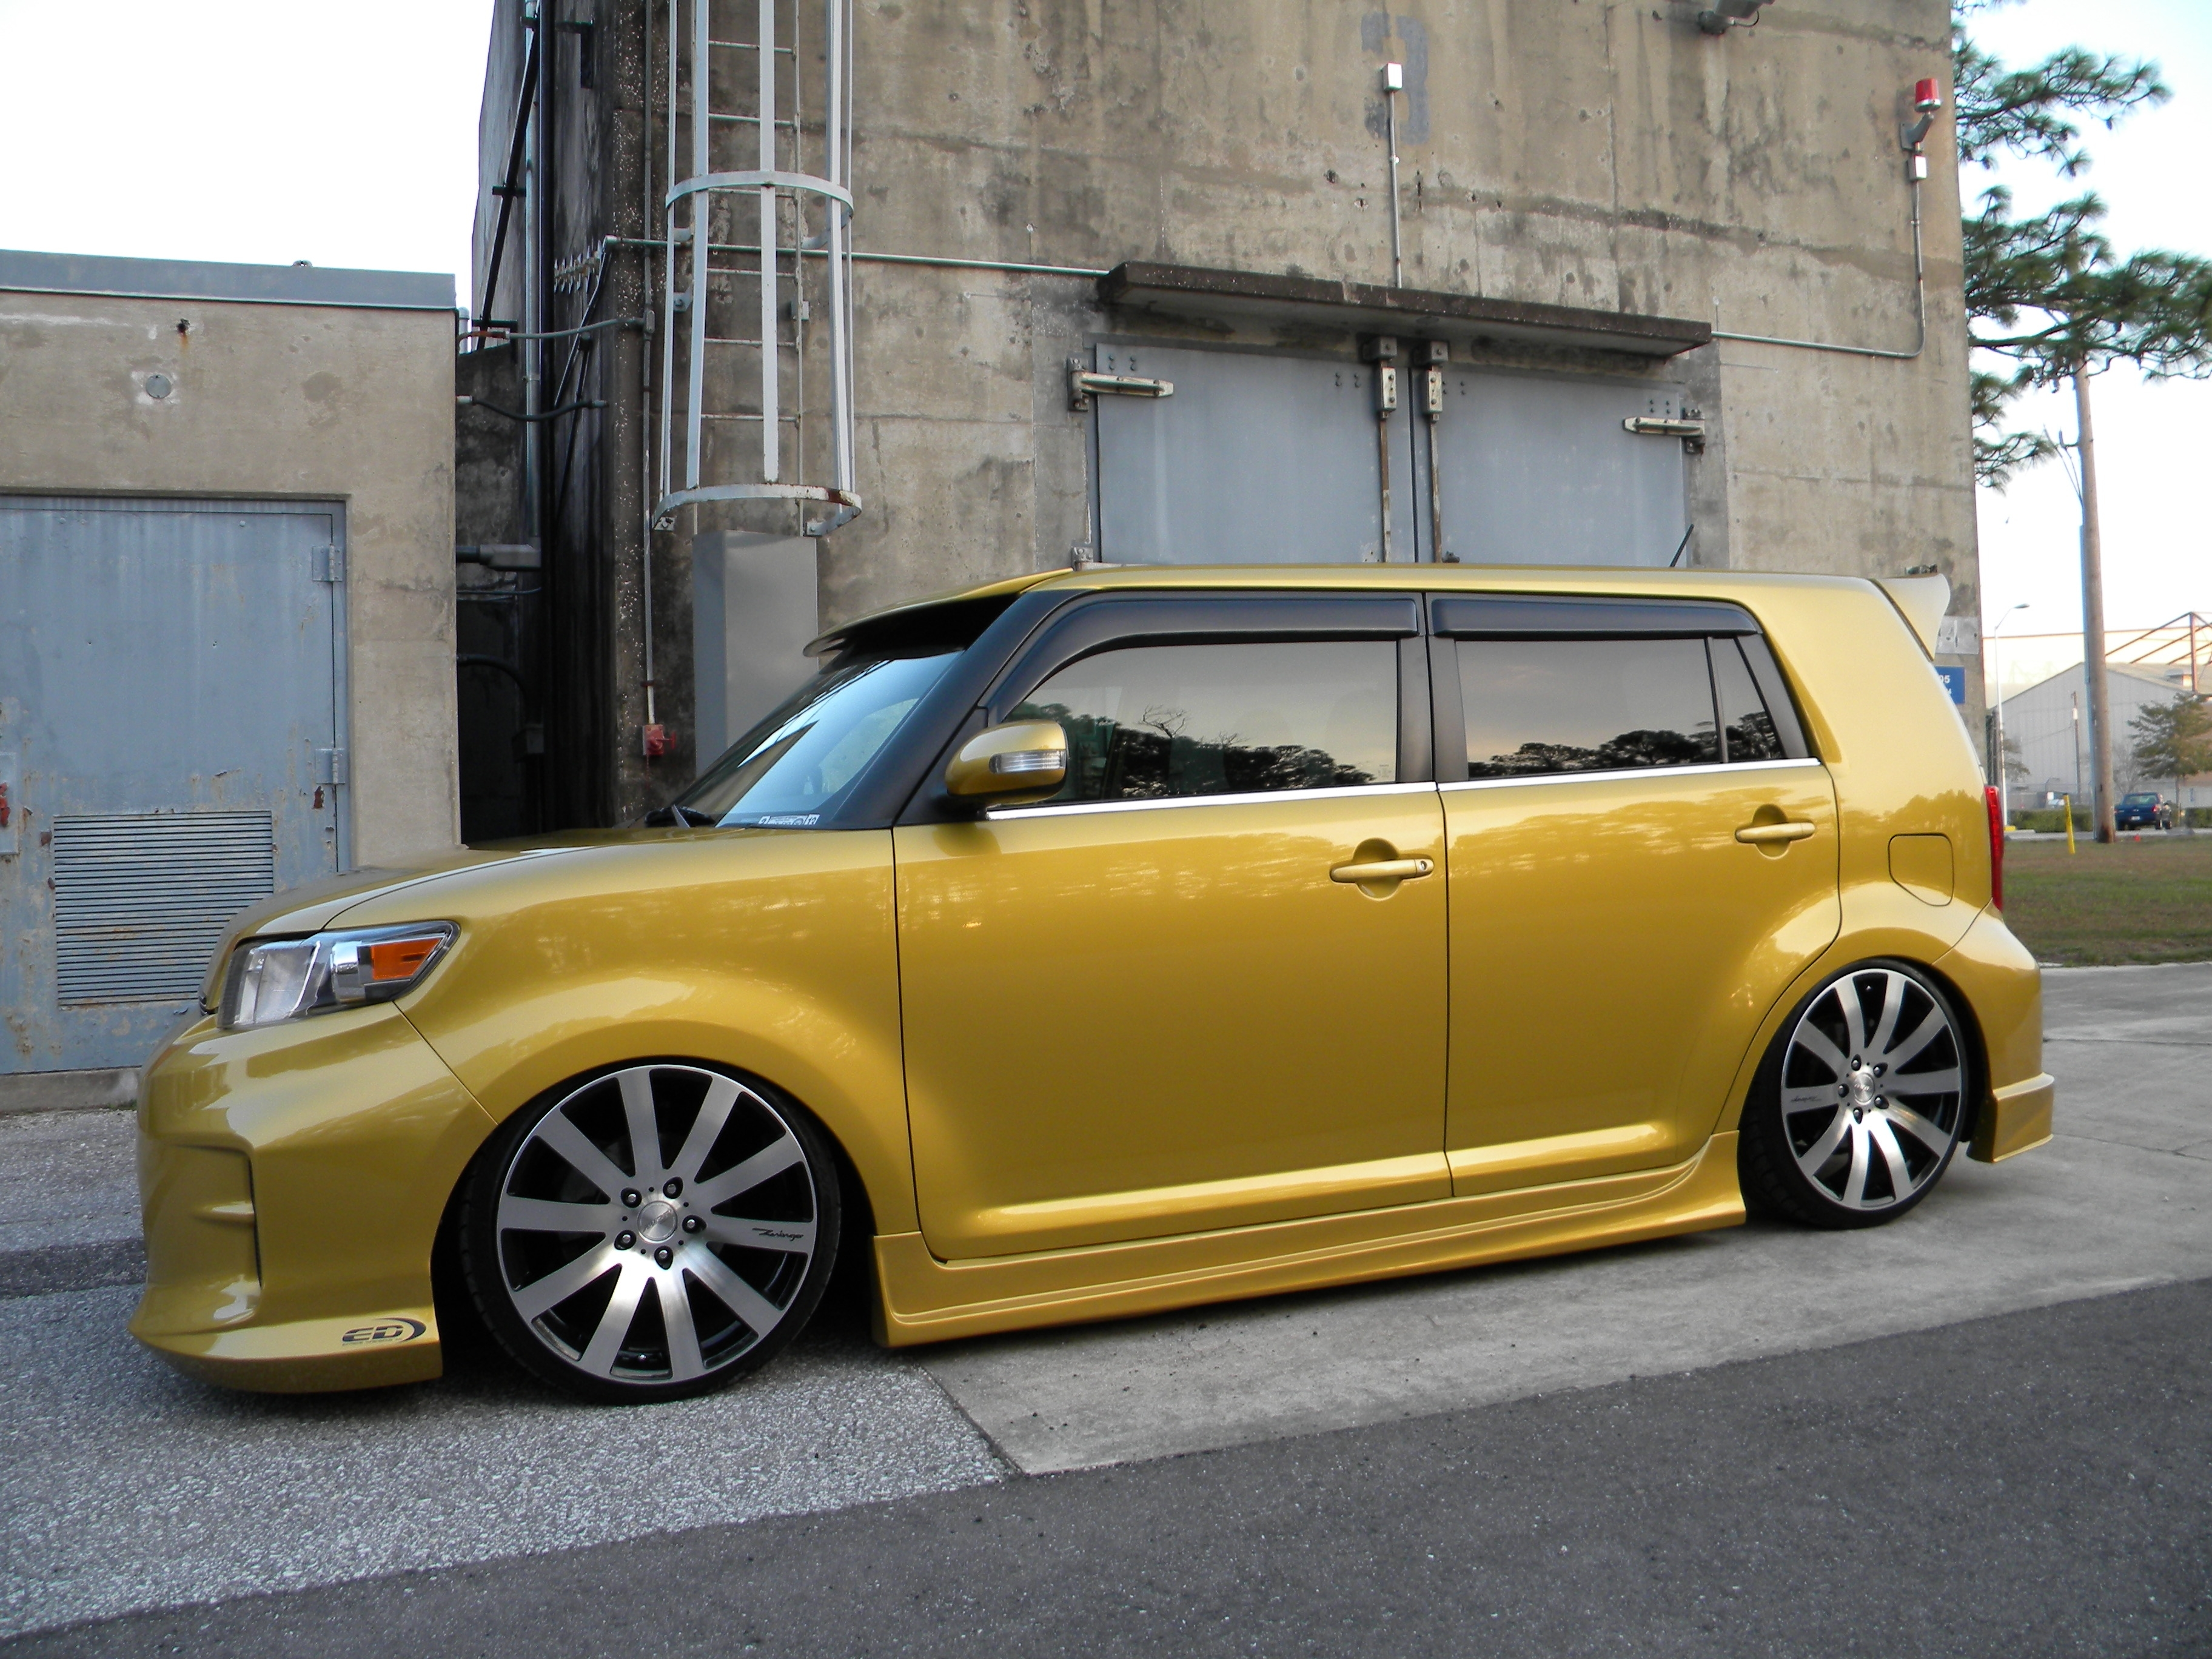 doughboygt 2008 scion xb specs photos modification info at cardomain. Black Bedroom Furniture Sets. Home Design Ideas